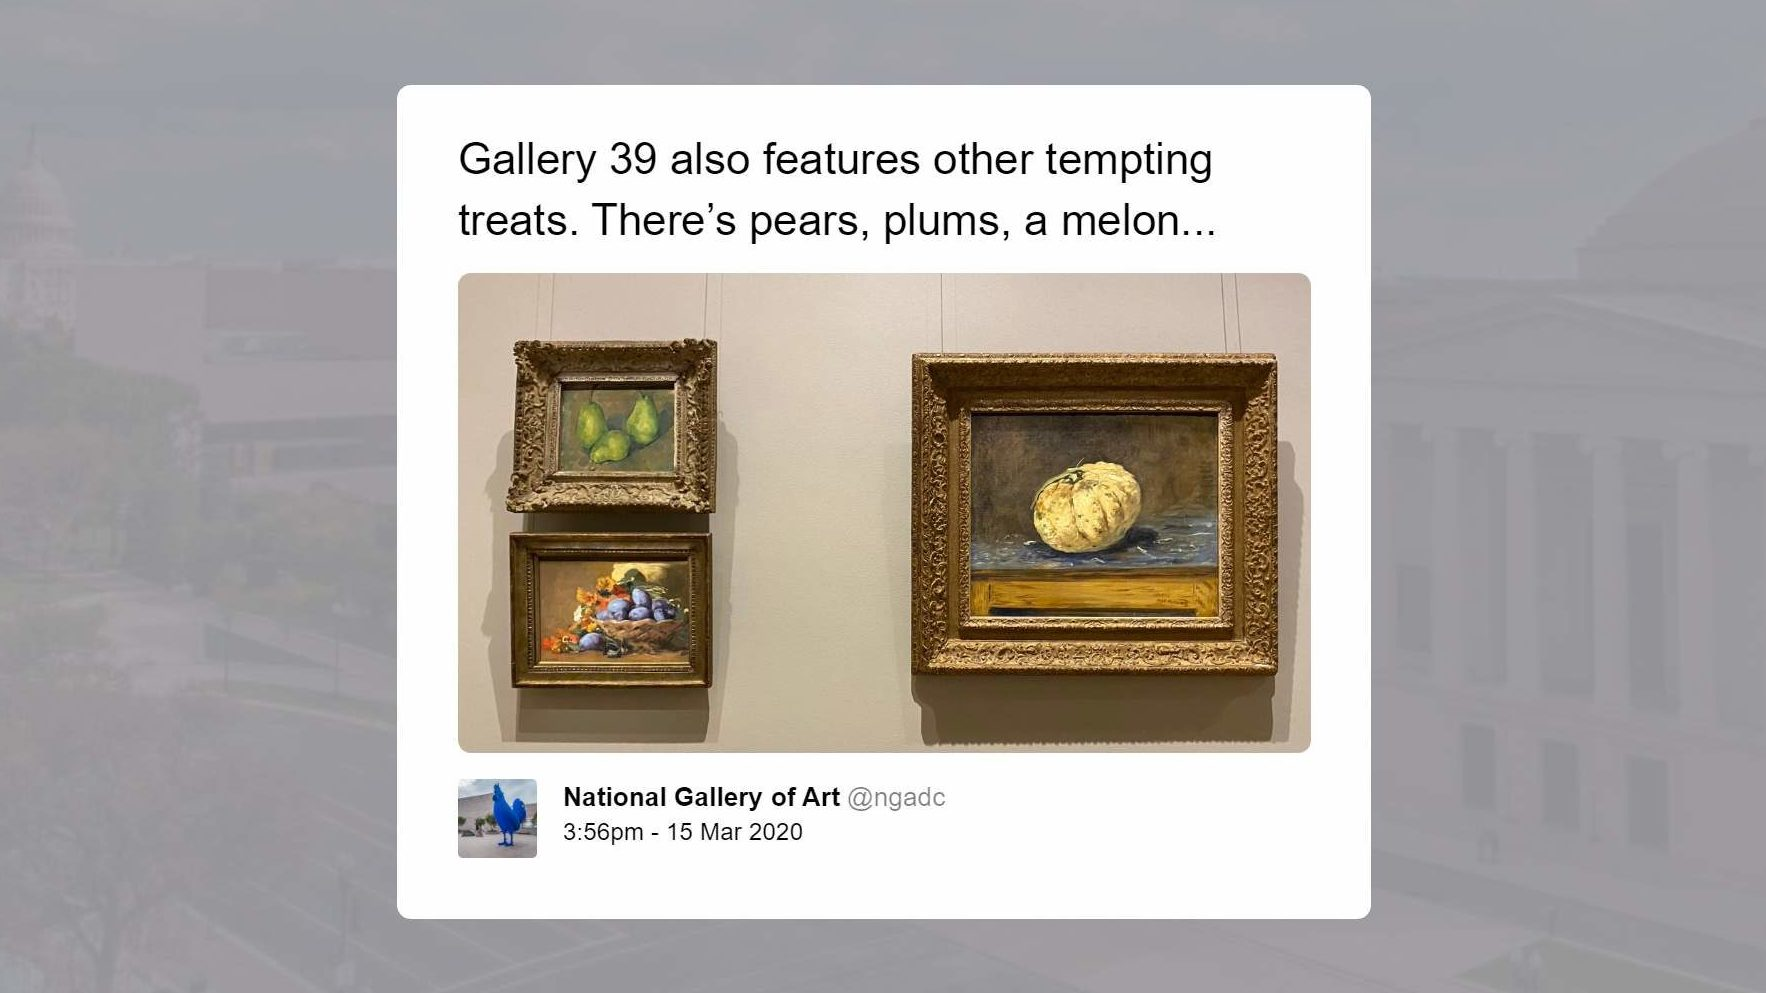 """A tweet reading """"Gallery 39 also features other tempting treats. There's pears, plums, a melon..."""" with pictures of the paintings referenced."""